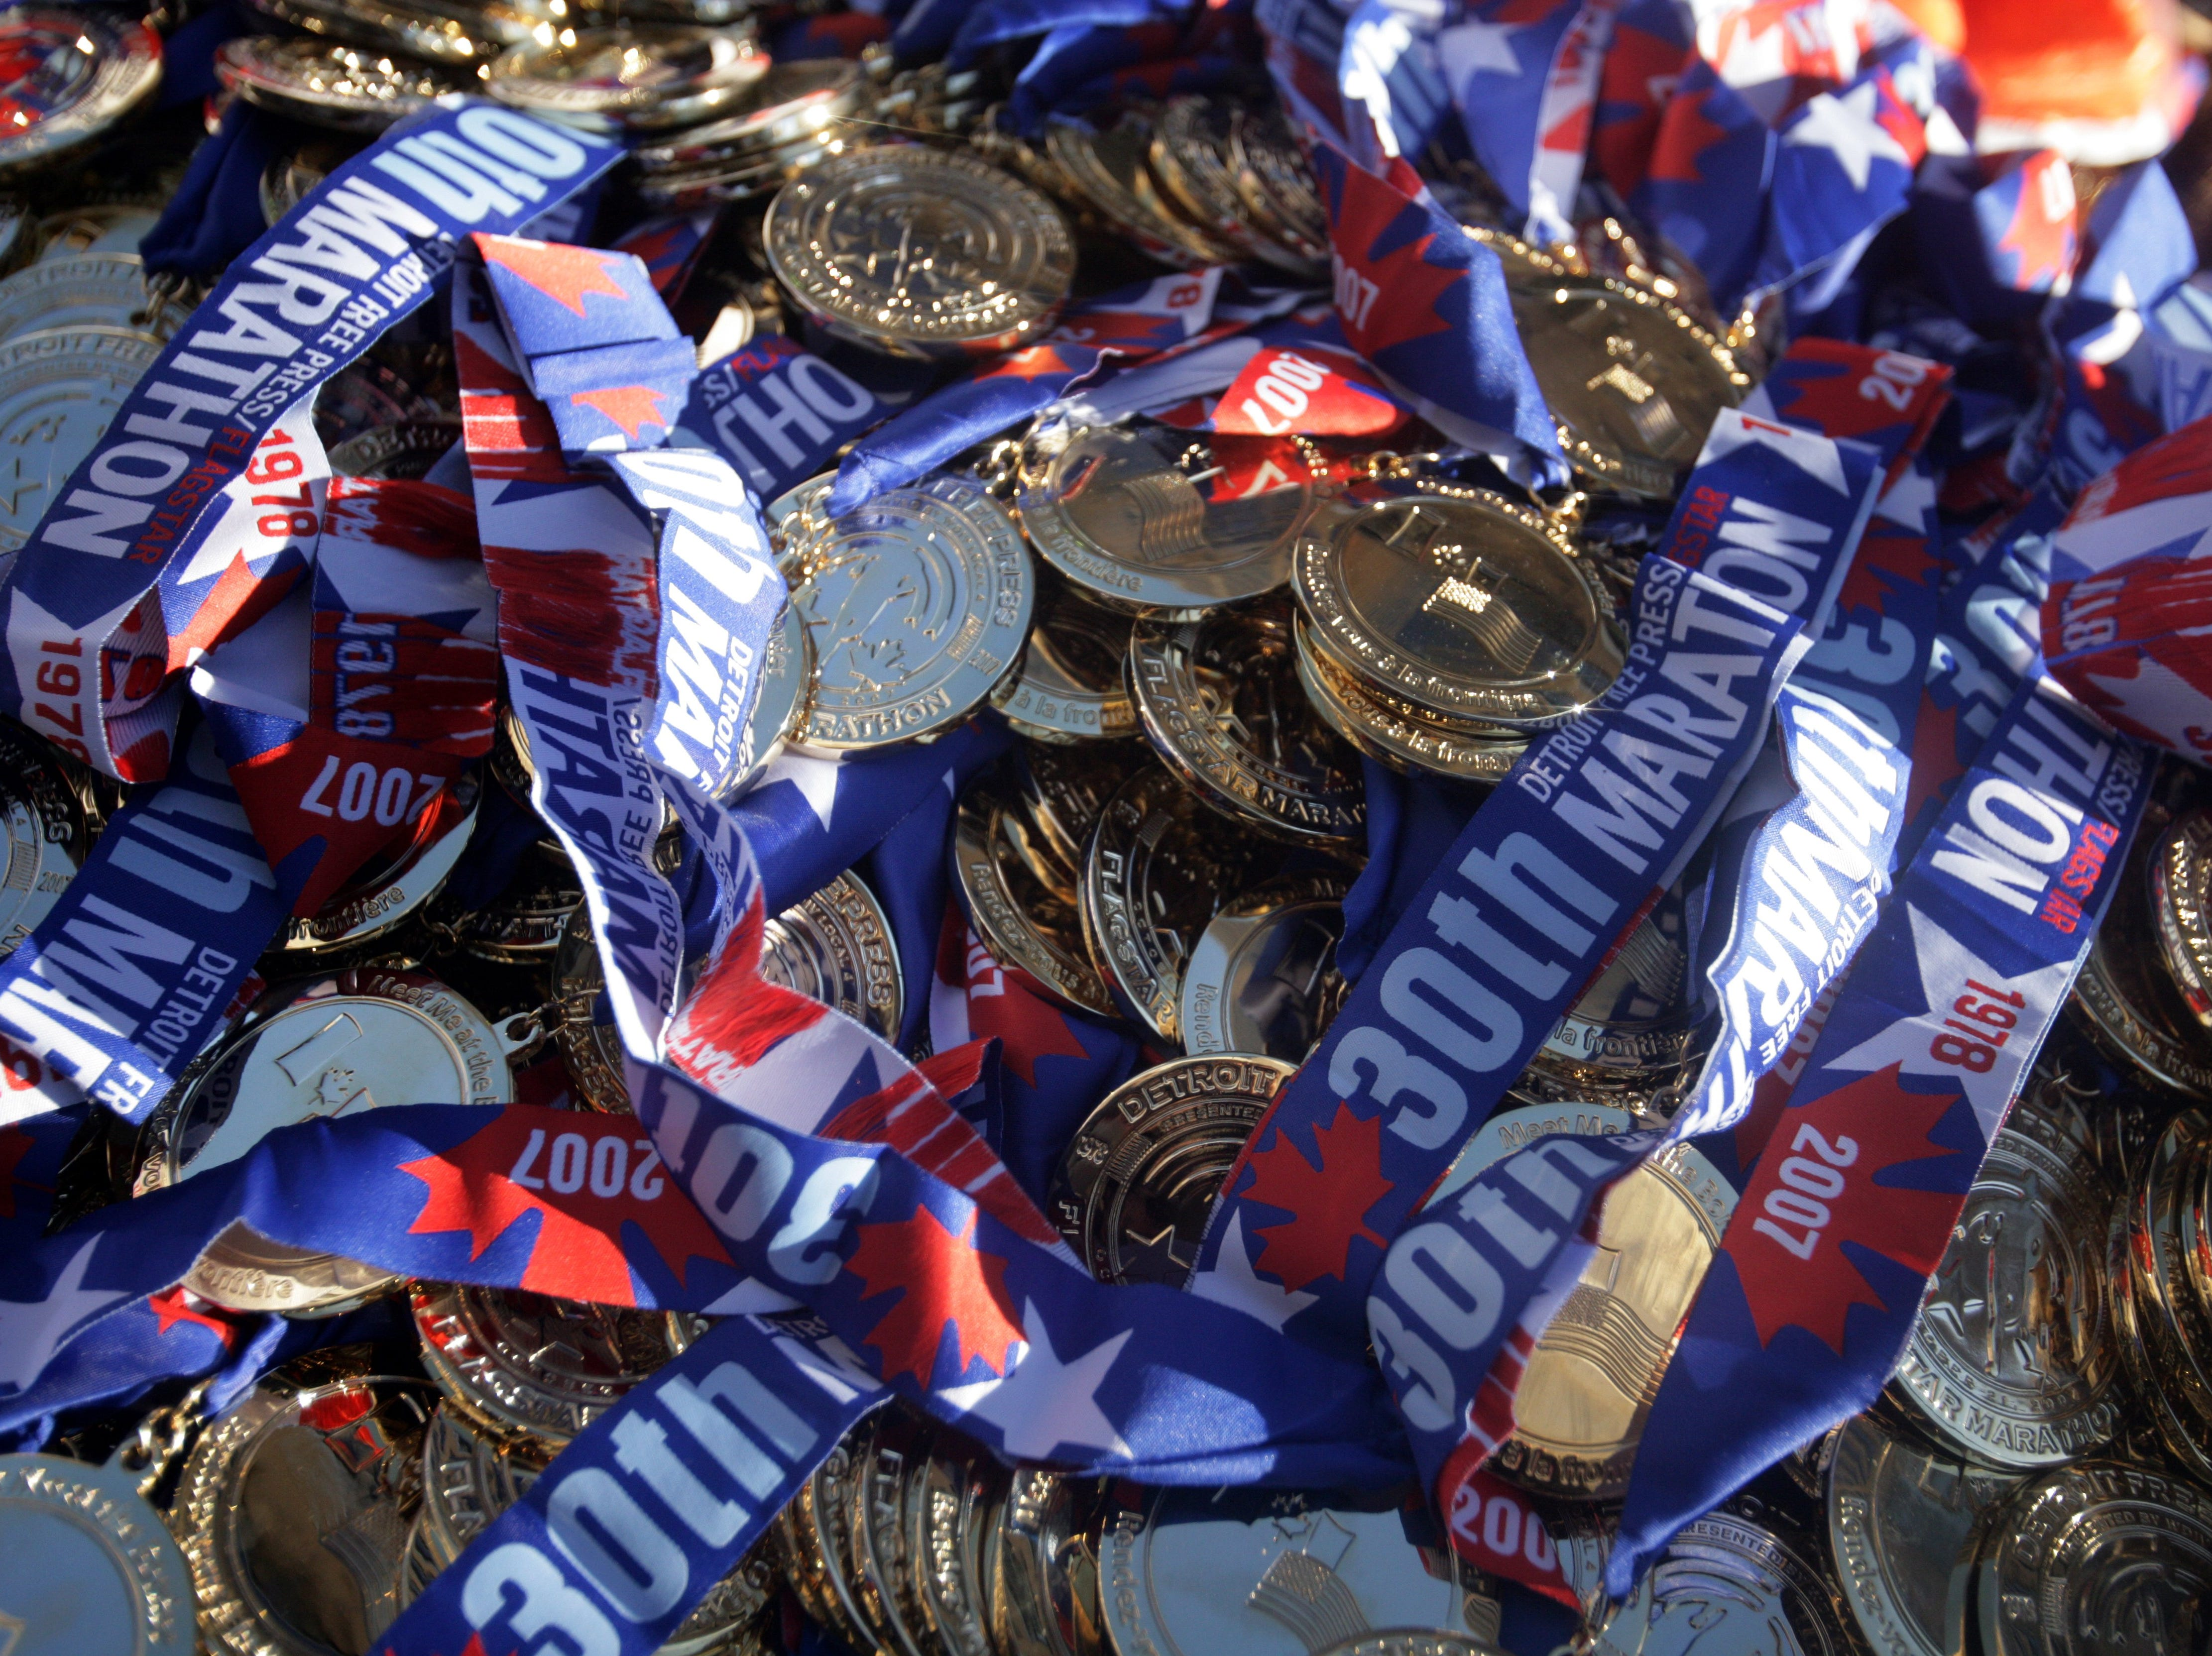 The medals that runners receive after crossing the finish line of the 30th Annual Detroit Free Press/ Flagstar Marathon in downtown Detroit Sunday, Oct. 21, 2007.